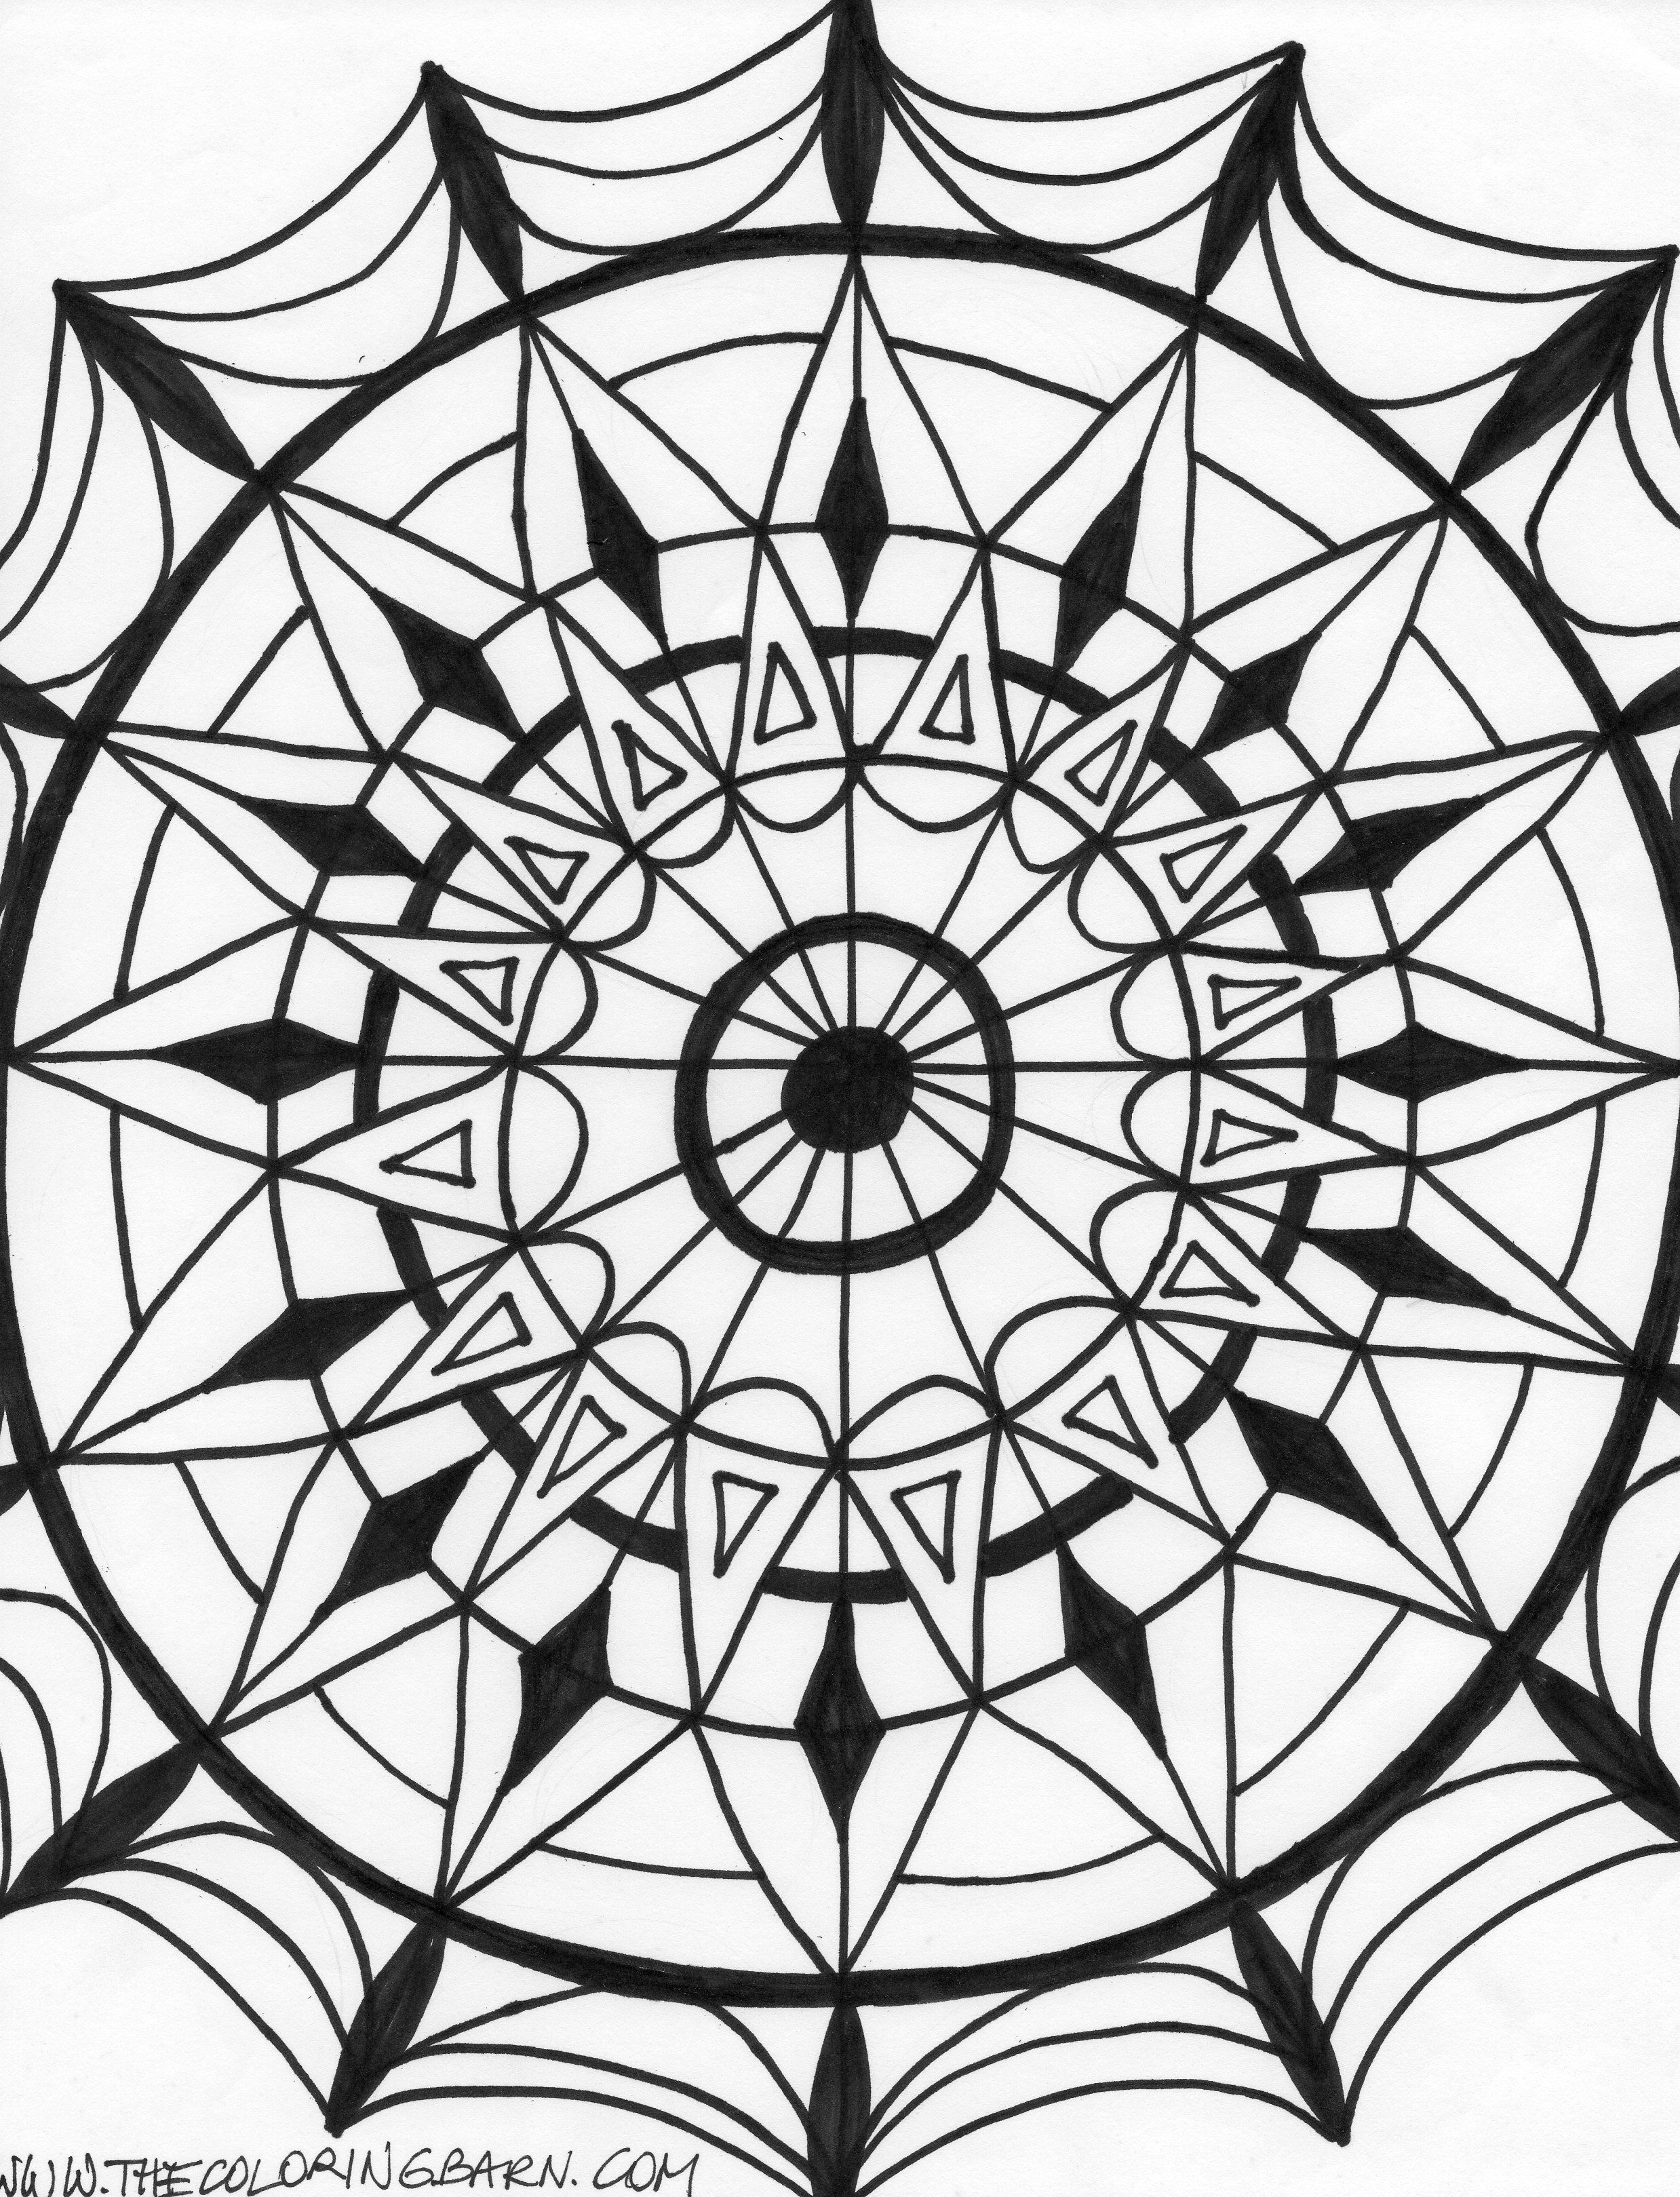 Kaleidoscope 9 Jpg 2477 3239 Coloring Pages Animal Coloring Books Printable Coloring Pages